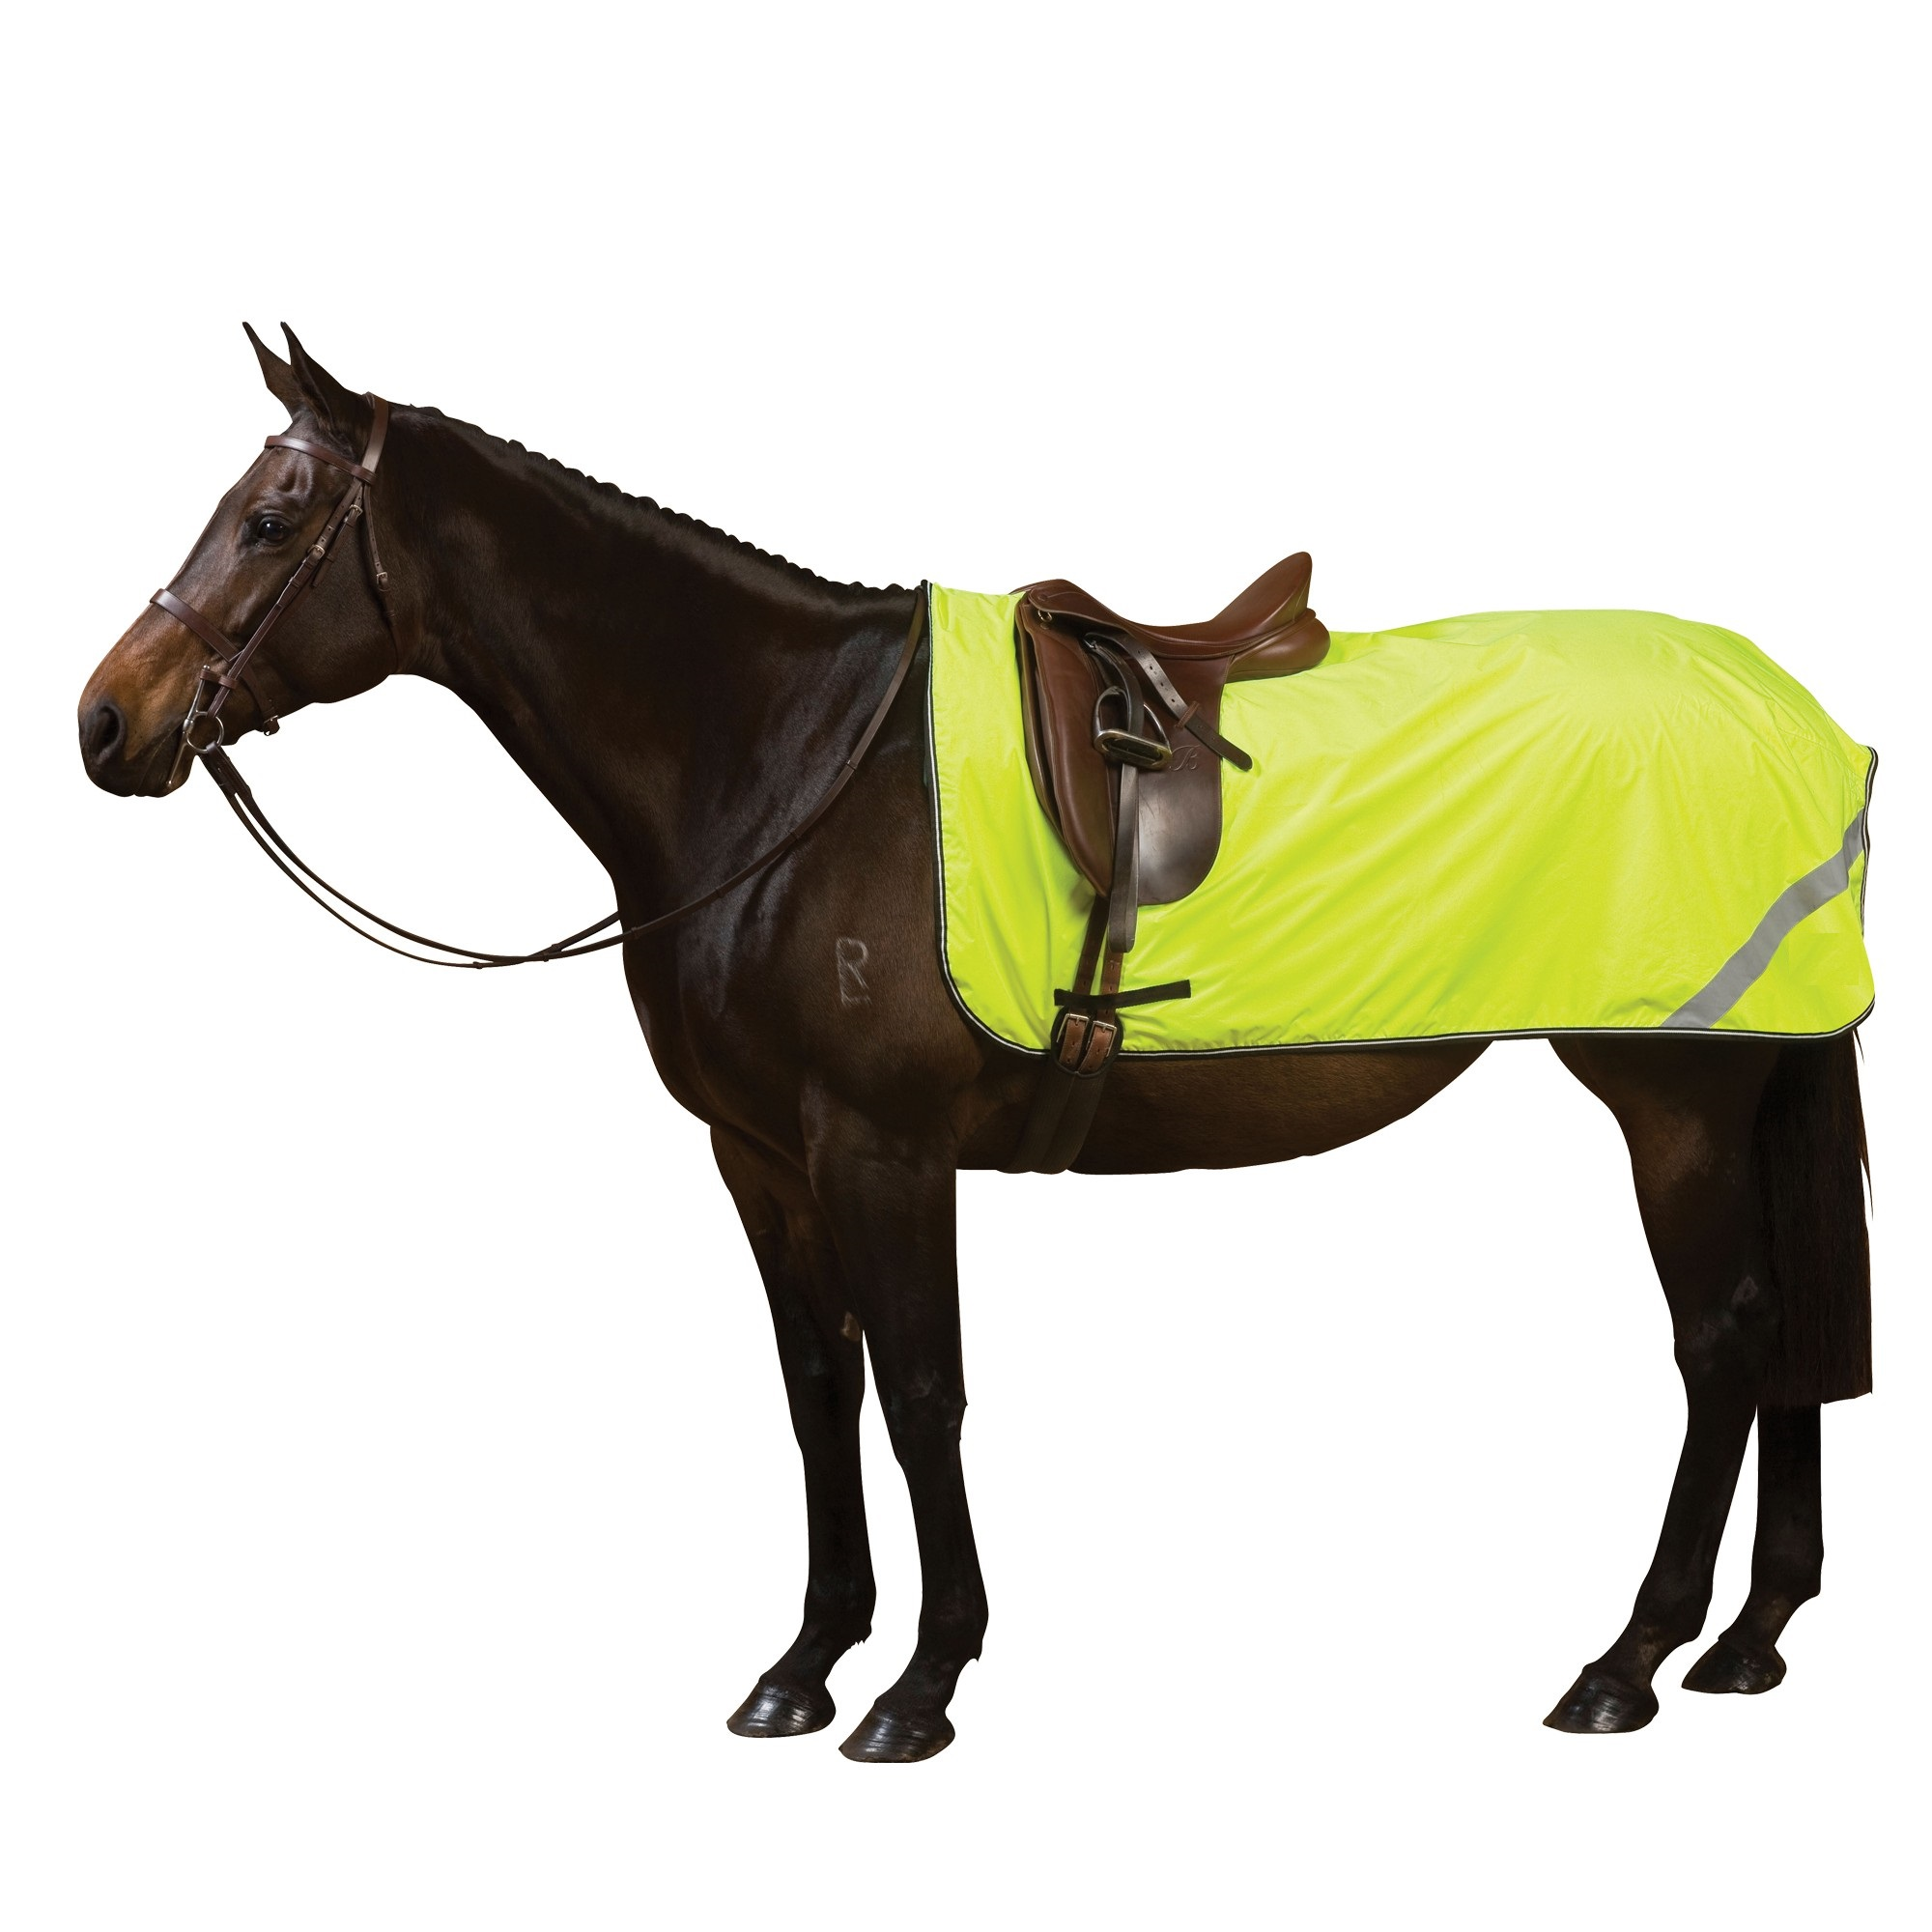 Horse Equipment Uk Equestrian Equipment Horse Riding